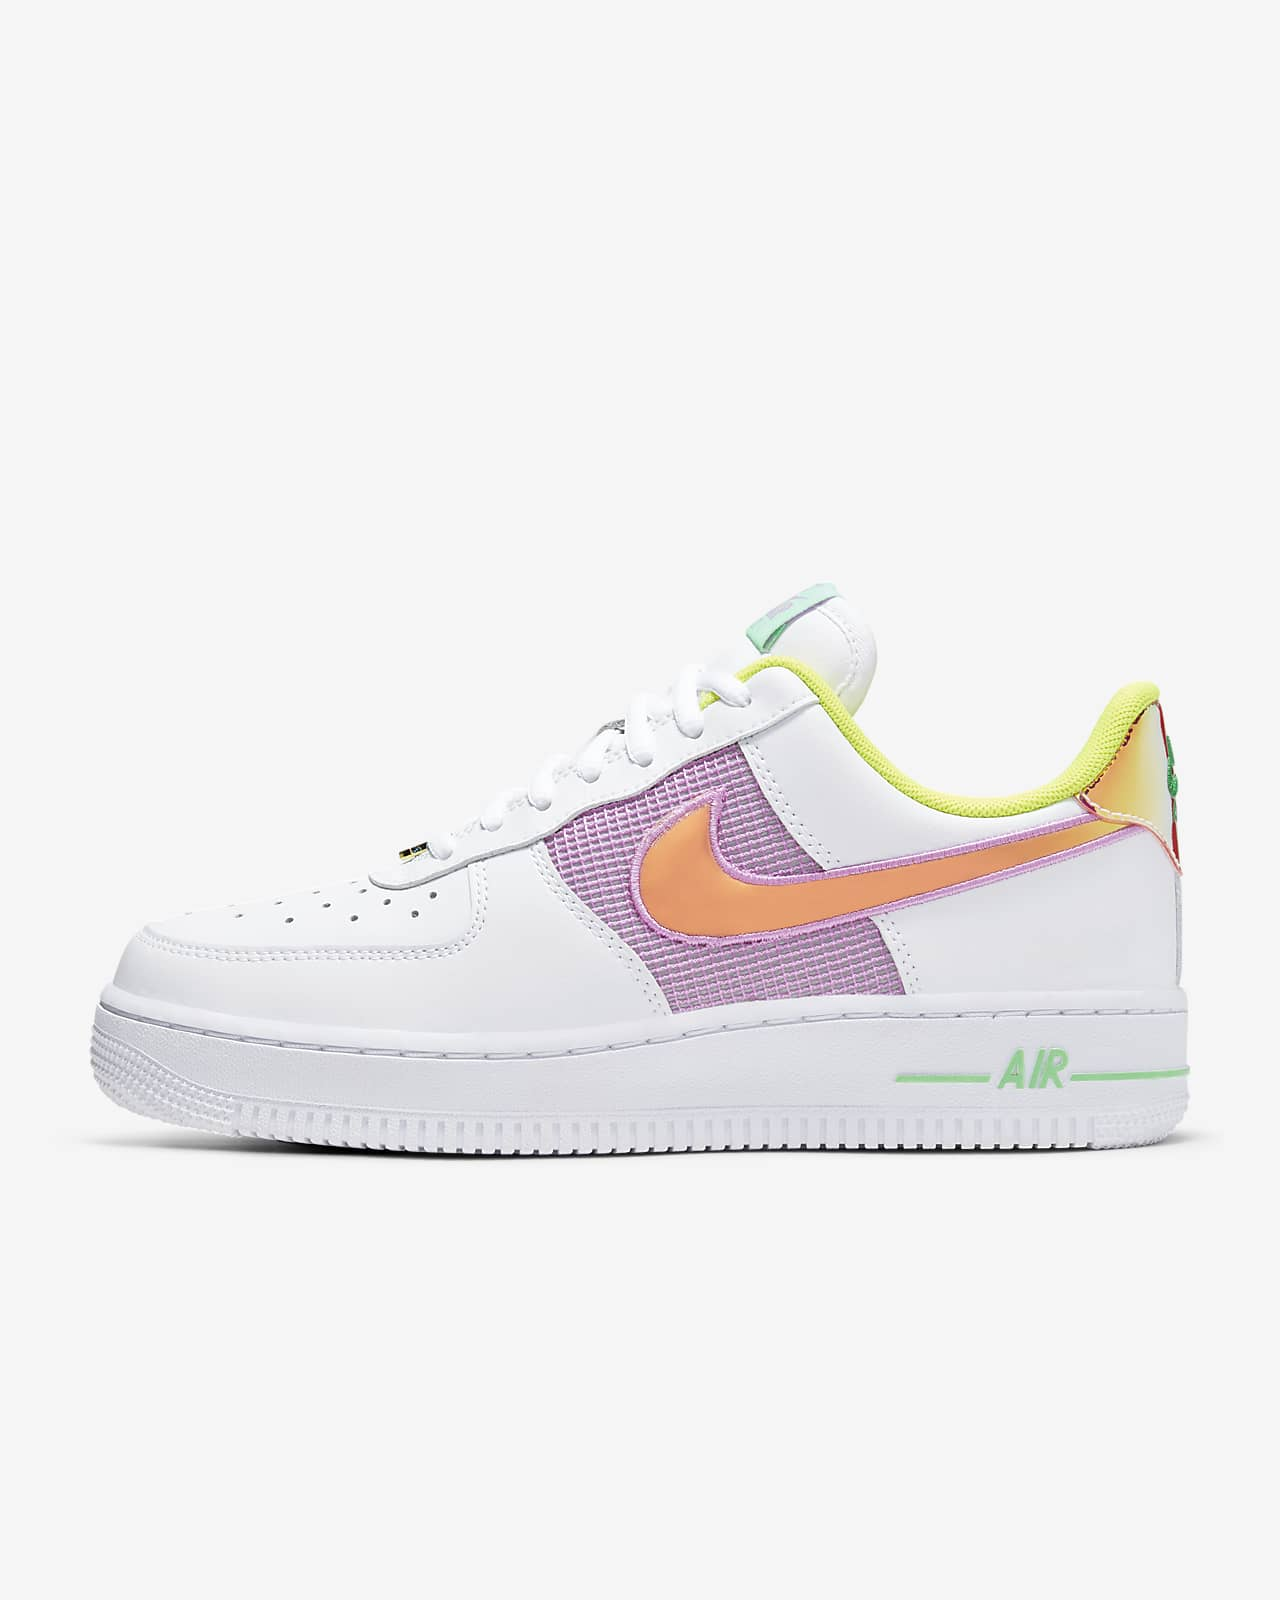 nike air force 1 olografico